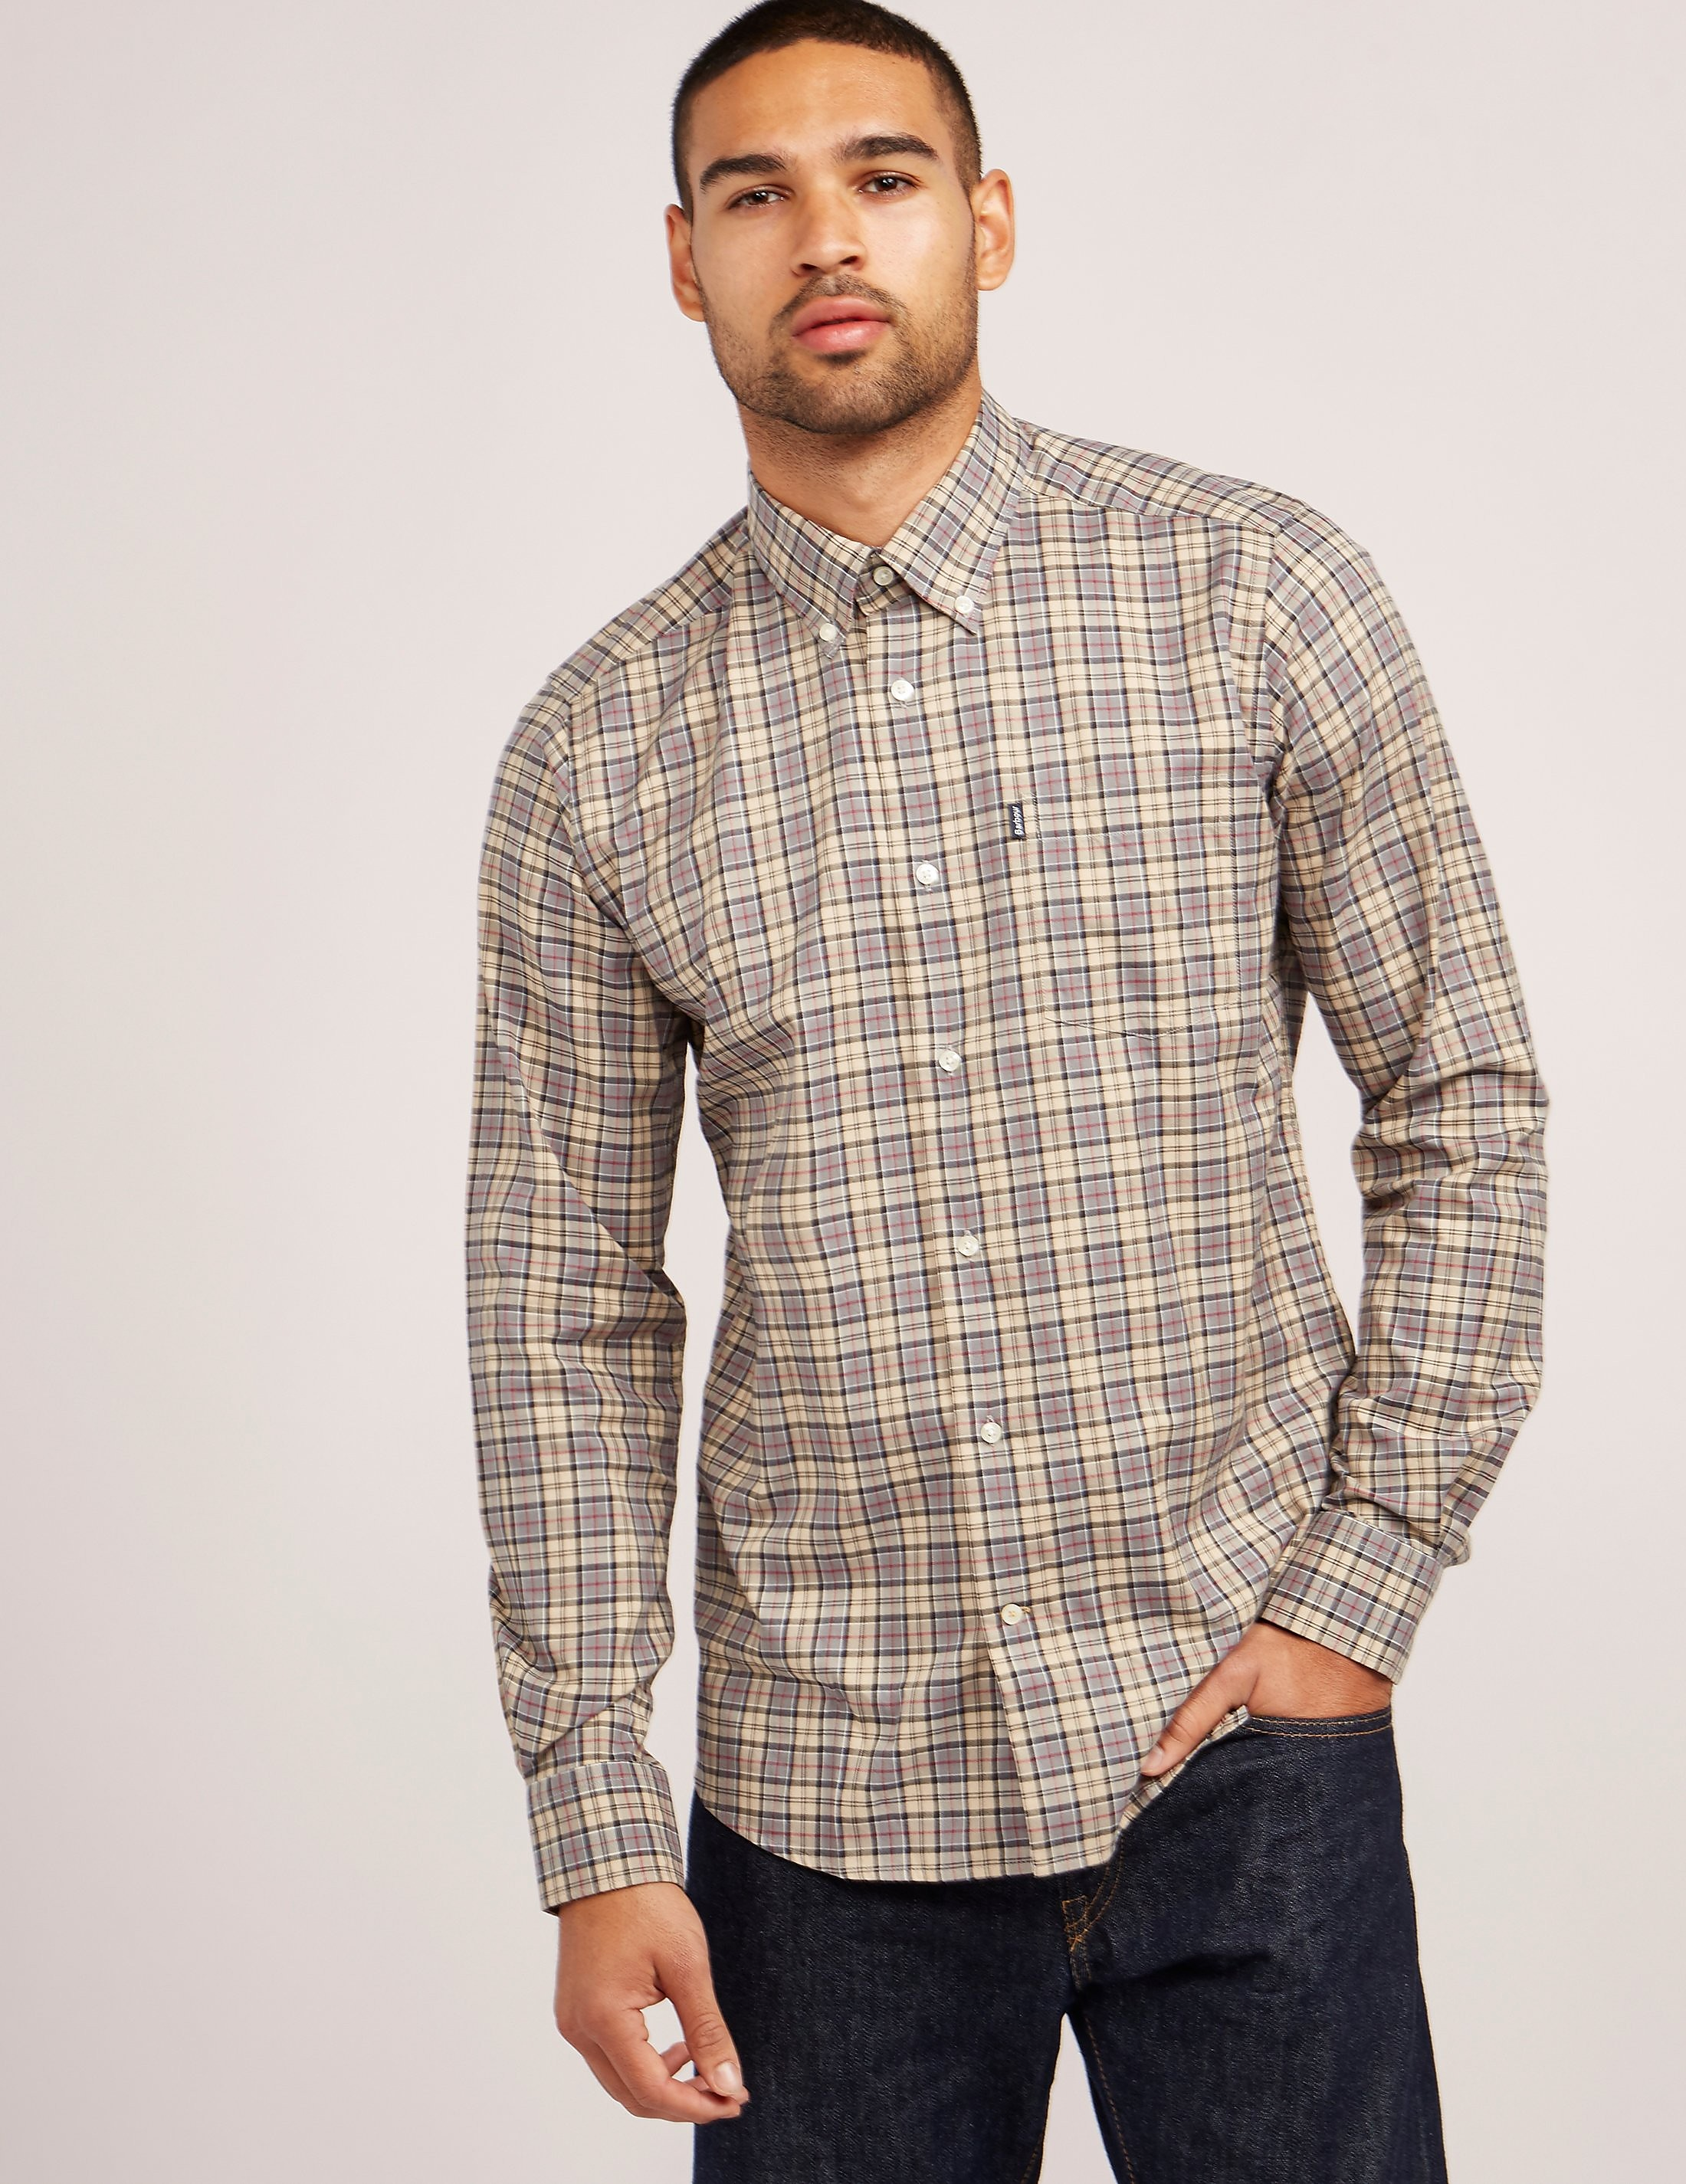 Barbour Long Sleeve Shirt